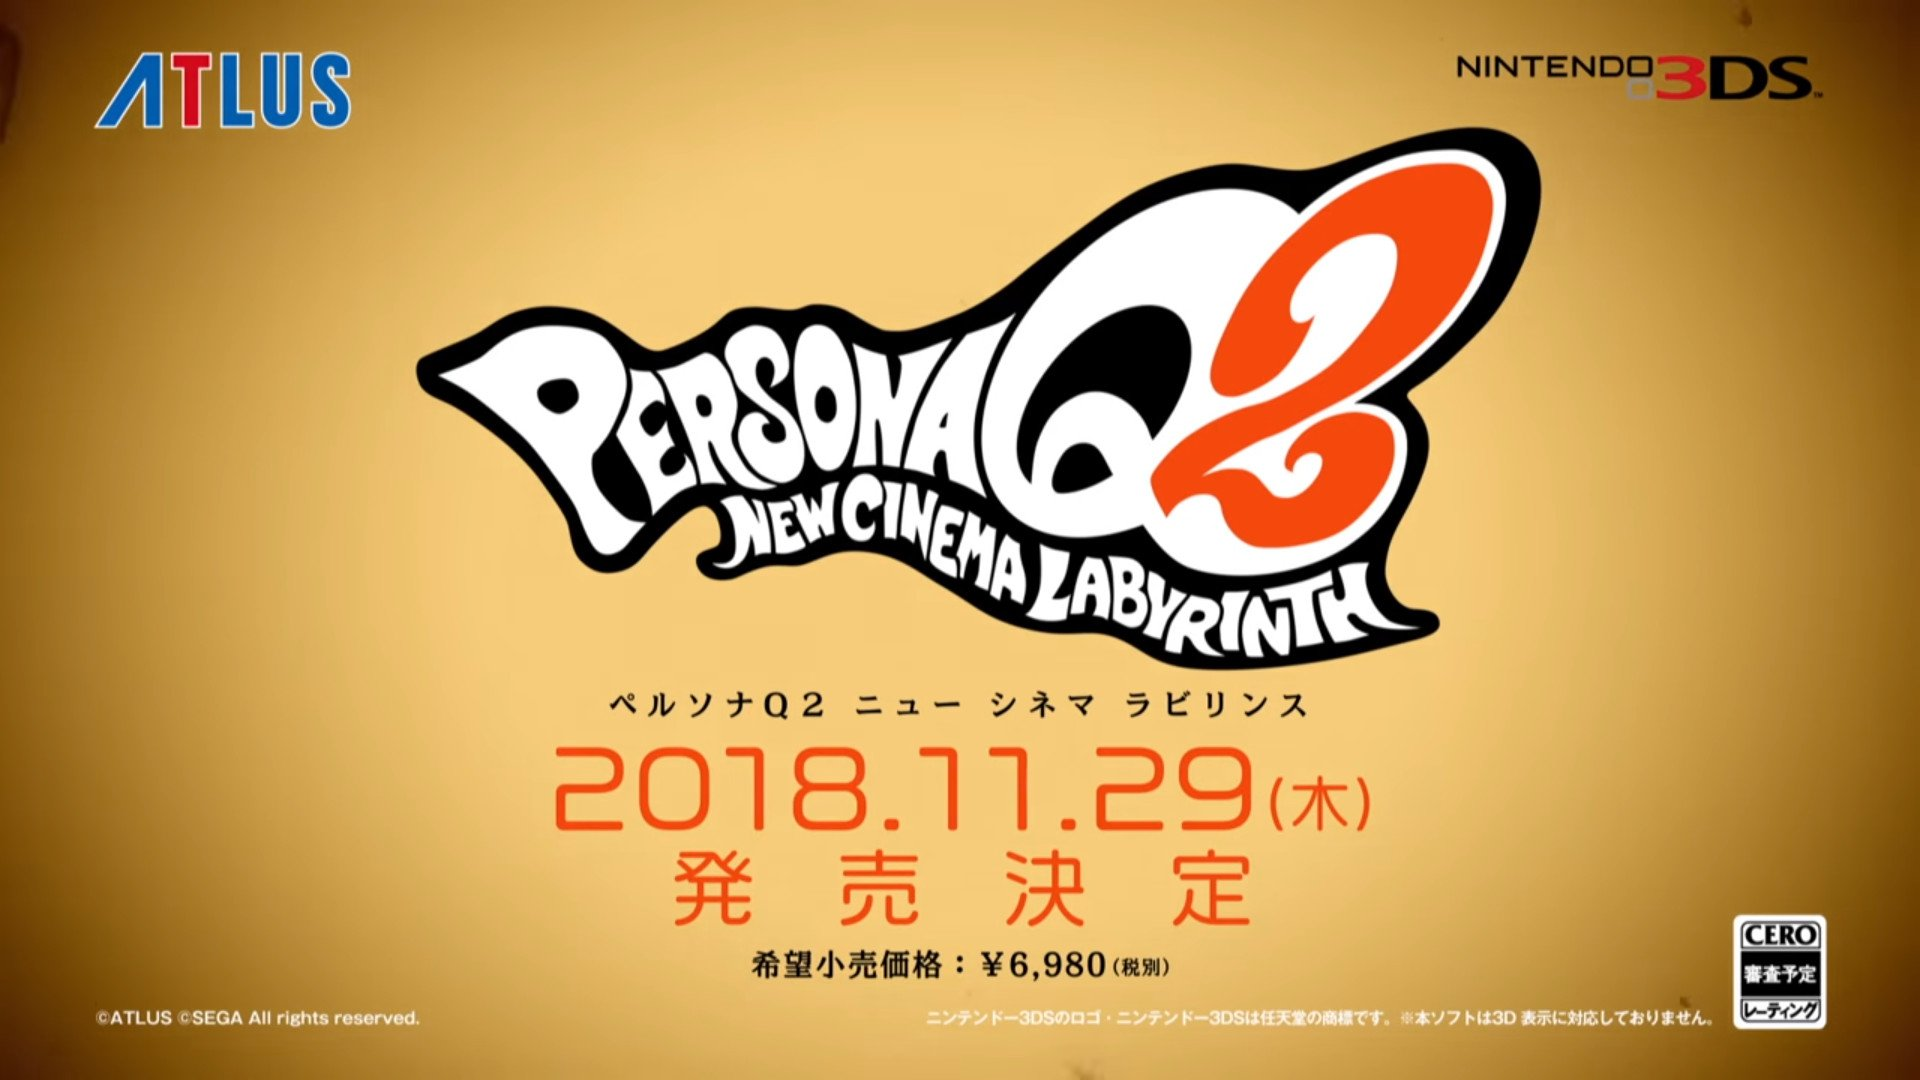 Persona Q2, an upcoming 3DS game, gets first trailer, pre-ordering